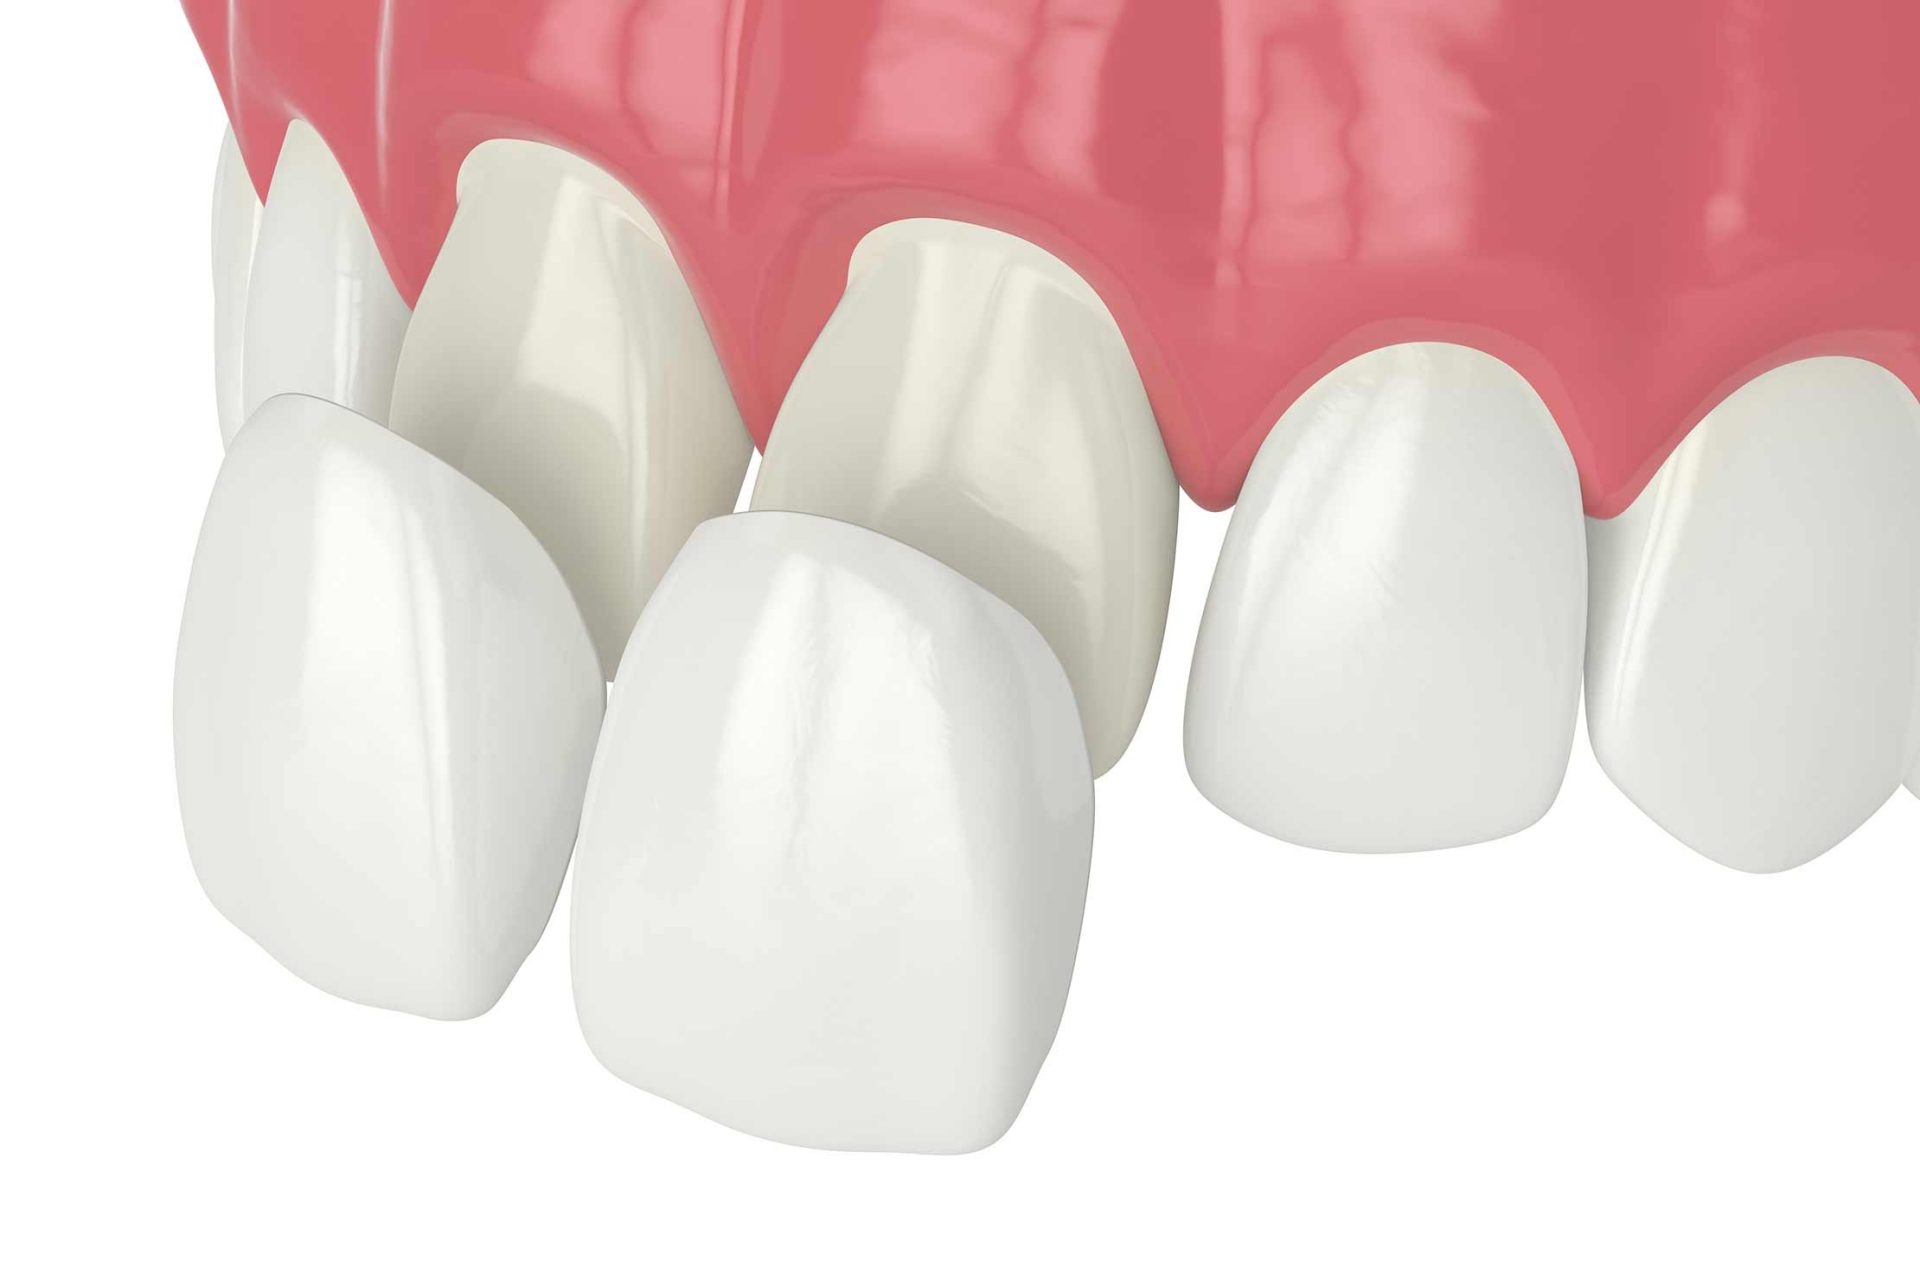 cosmetic dental restorations